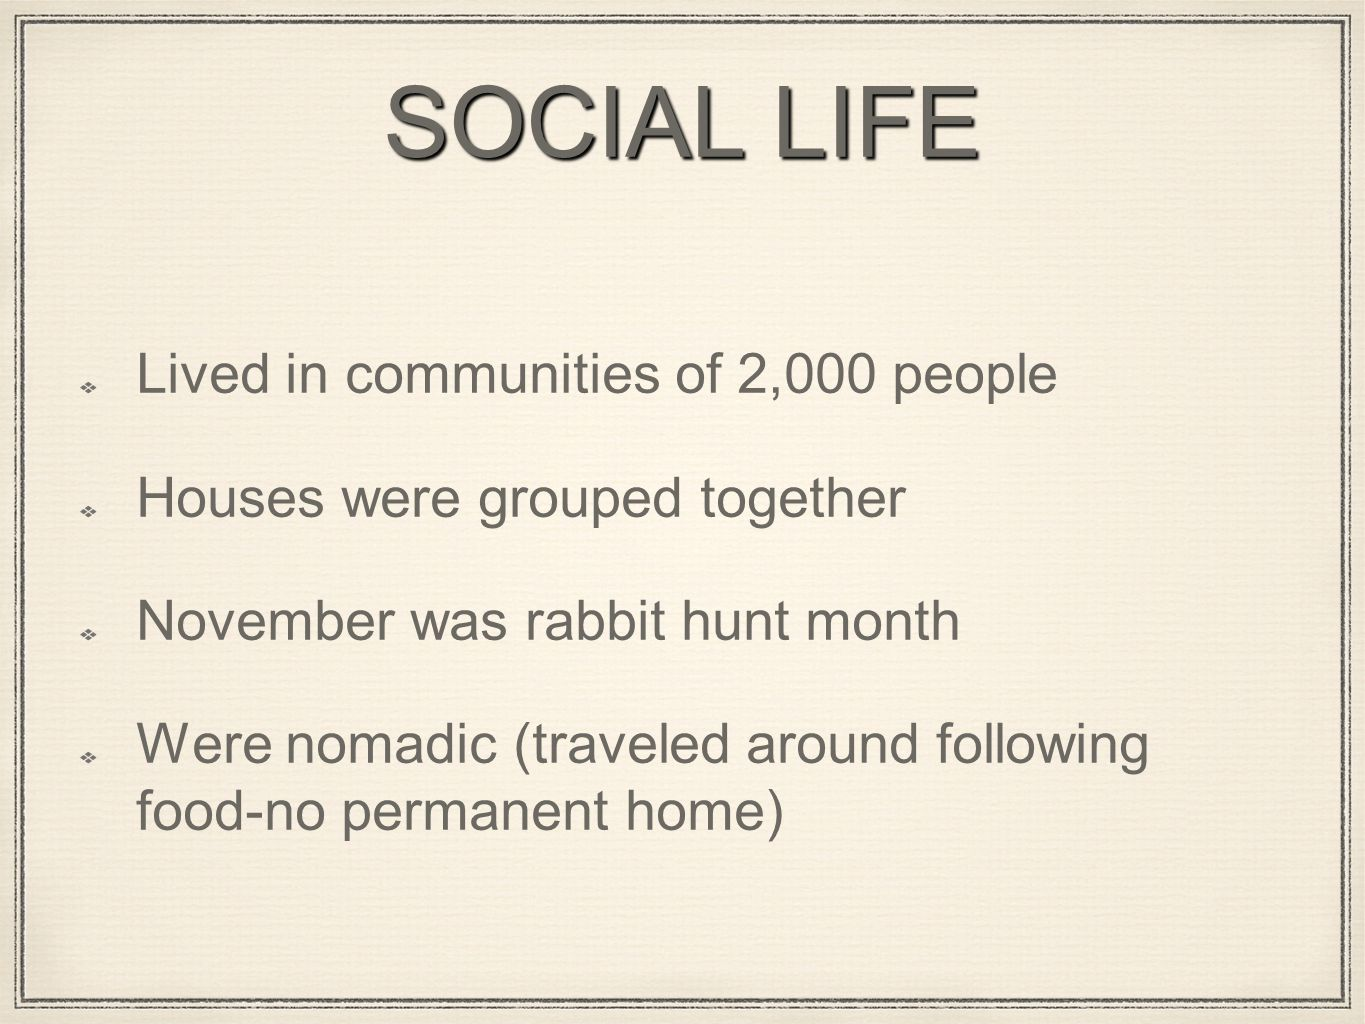 SOCIAL LIFE Lived in communities of 2,000 people Houses were grouped together November was rabbit hunt month Were nomadic (traveled around following food-no permanent home)